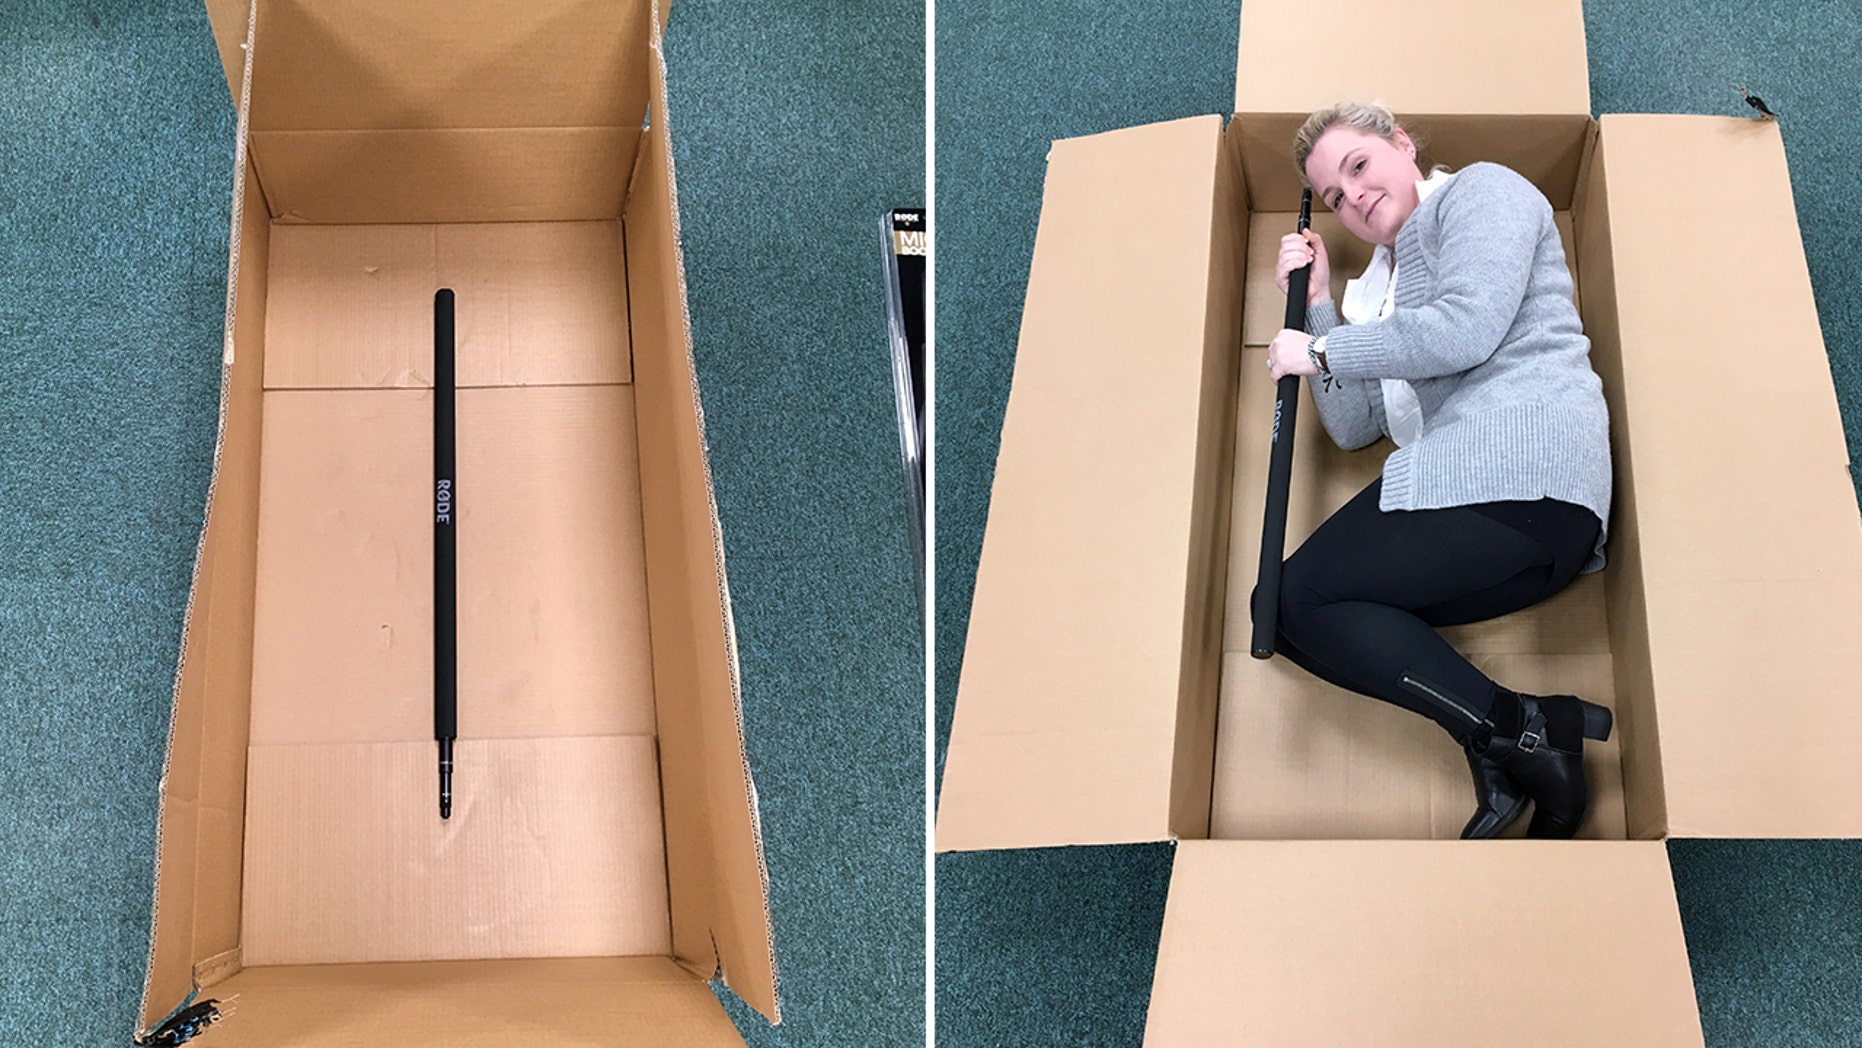 A woman was shocked by the size of box Amazon used for her tiny product.